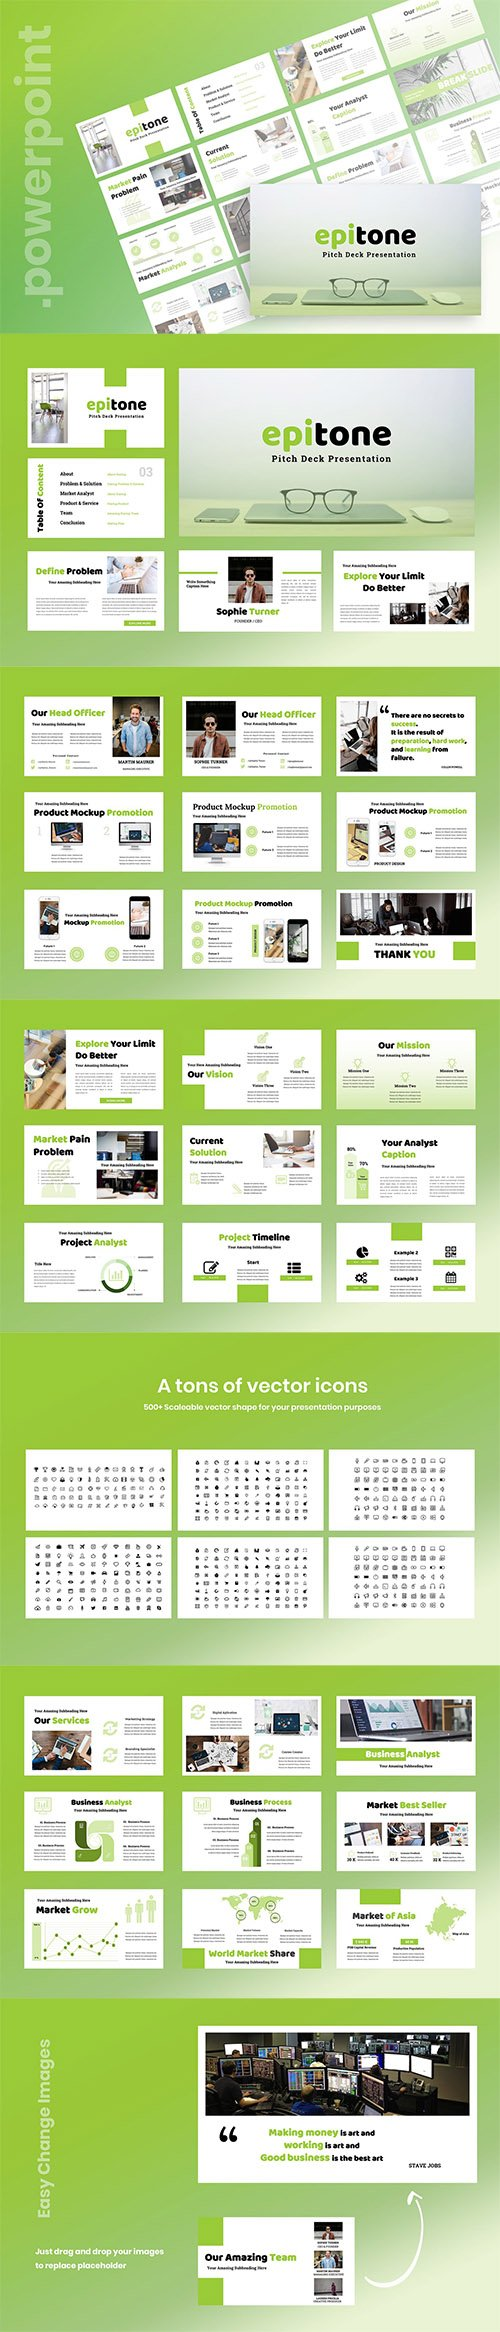 Epitone - Pitch Deck Powerpoint, Keynote and Google Slides Templates